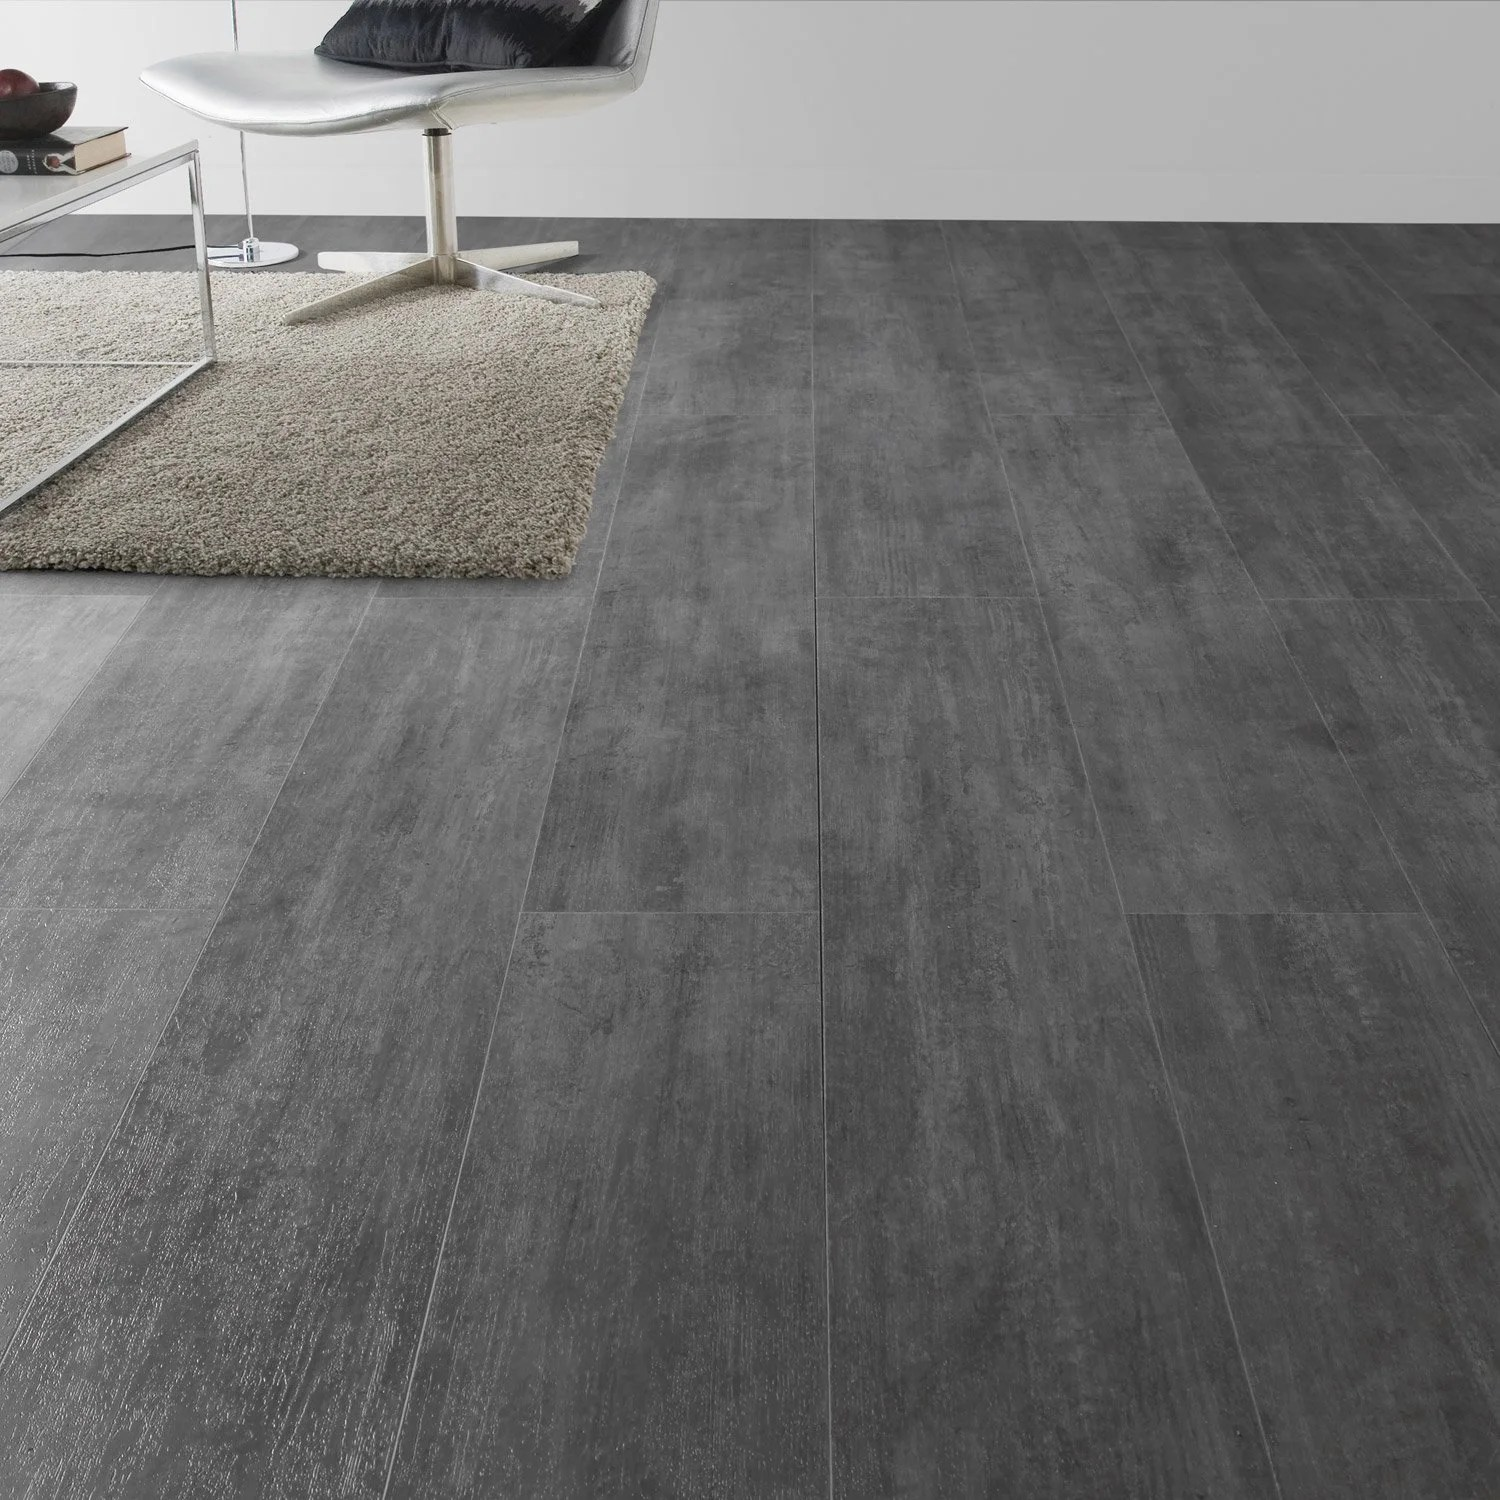 Dalle De Ciment Pour Terrasse Lame Pvc Clipsable Gris Nolita Grey Senso Lock + Gerflor